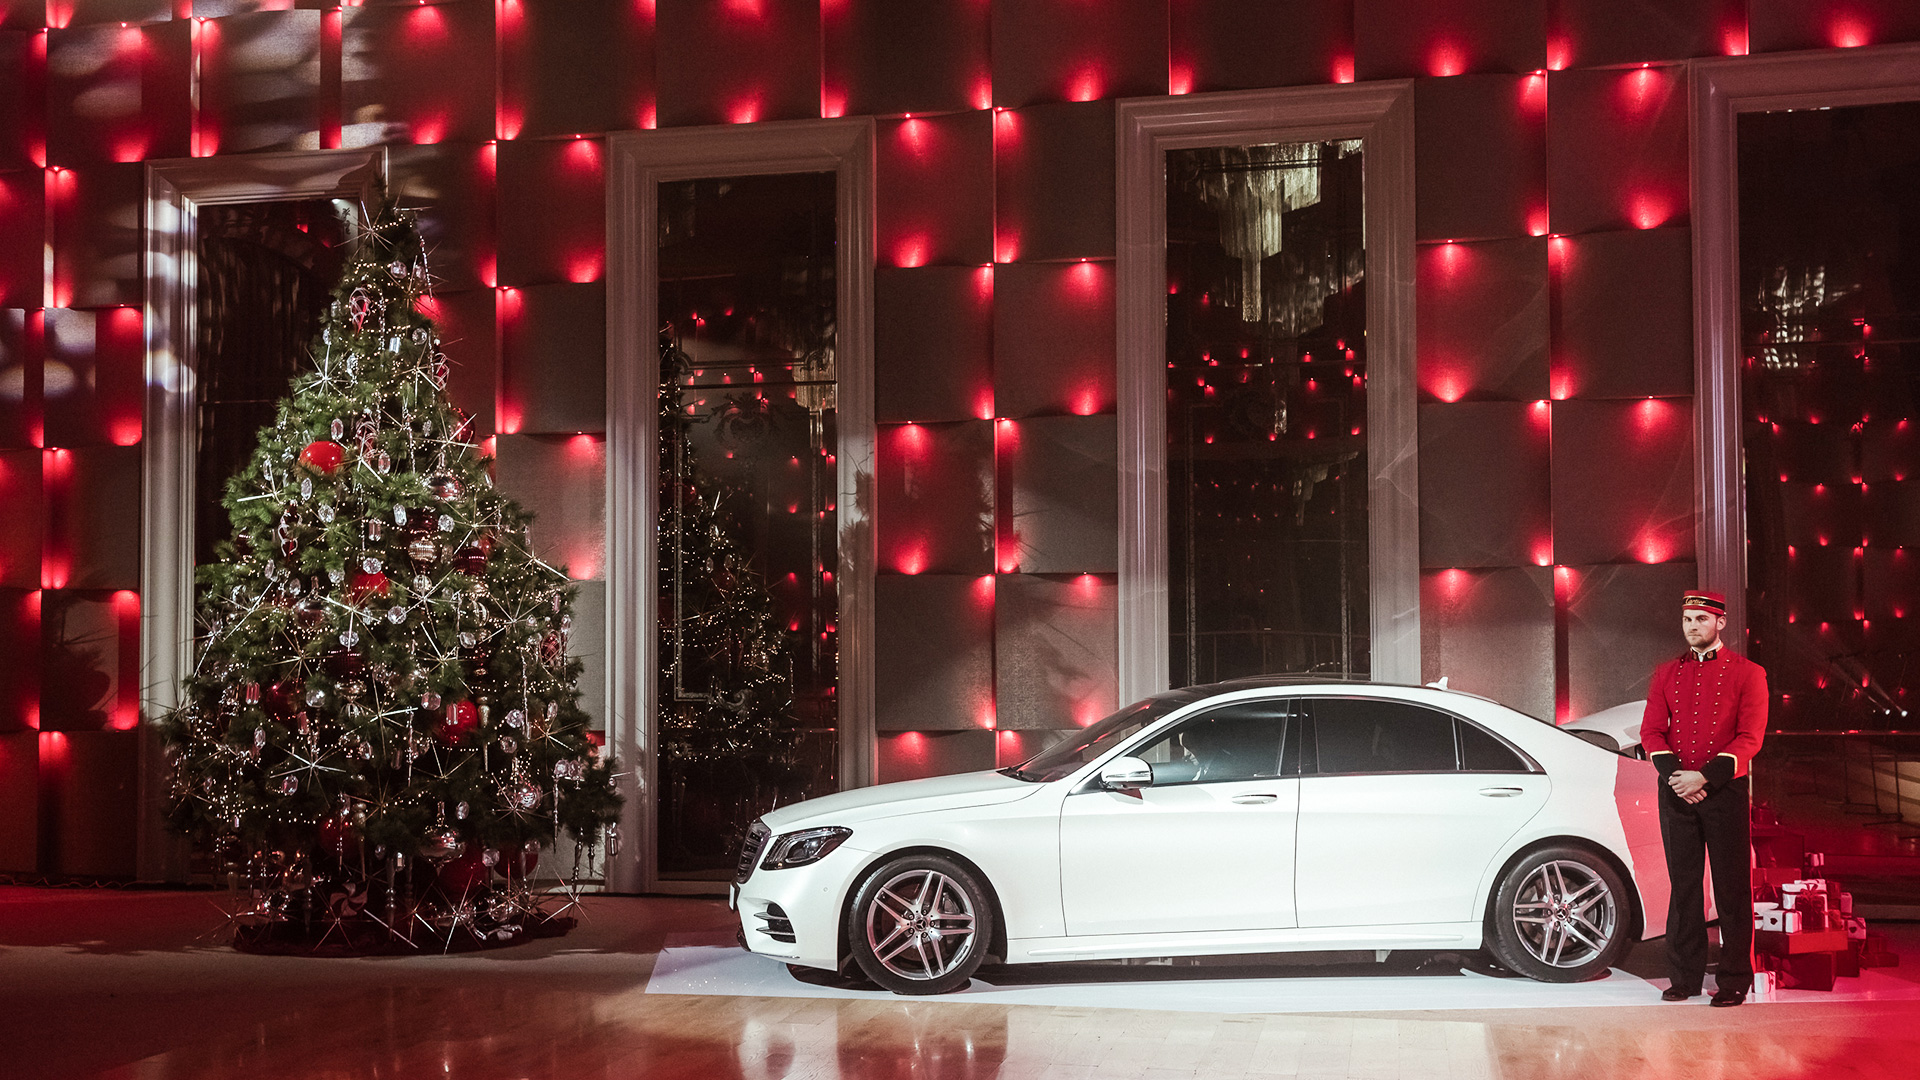 L Officiel Red Shoes Christmas Dance By Mercedes Benz 2017 Ultra Promo